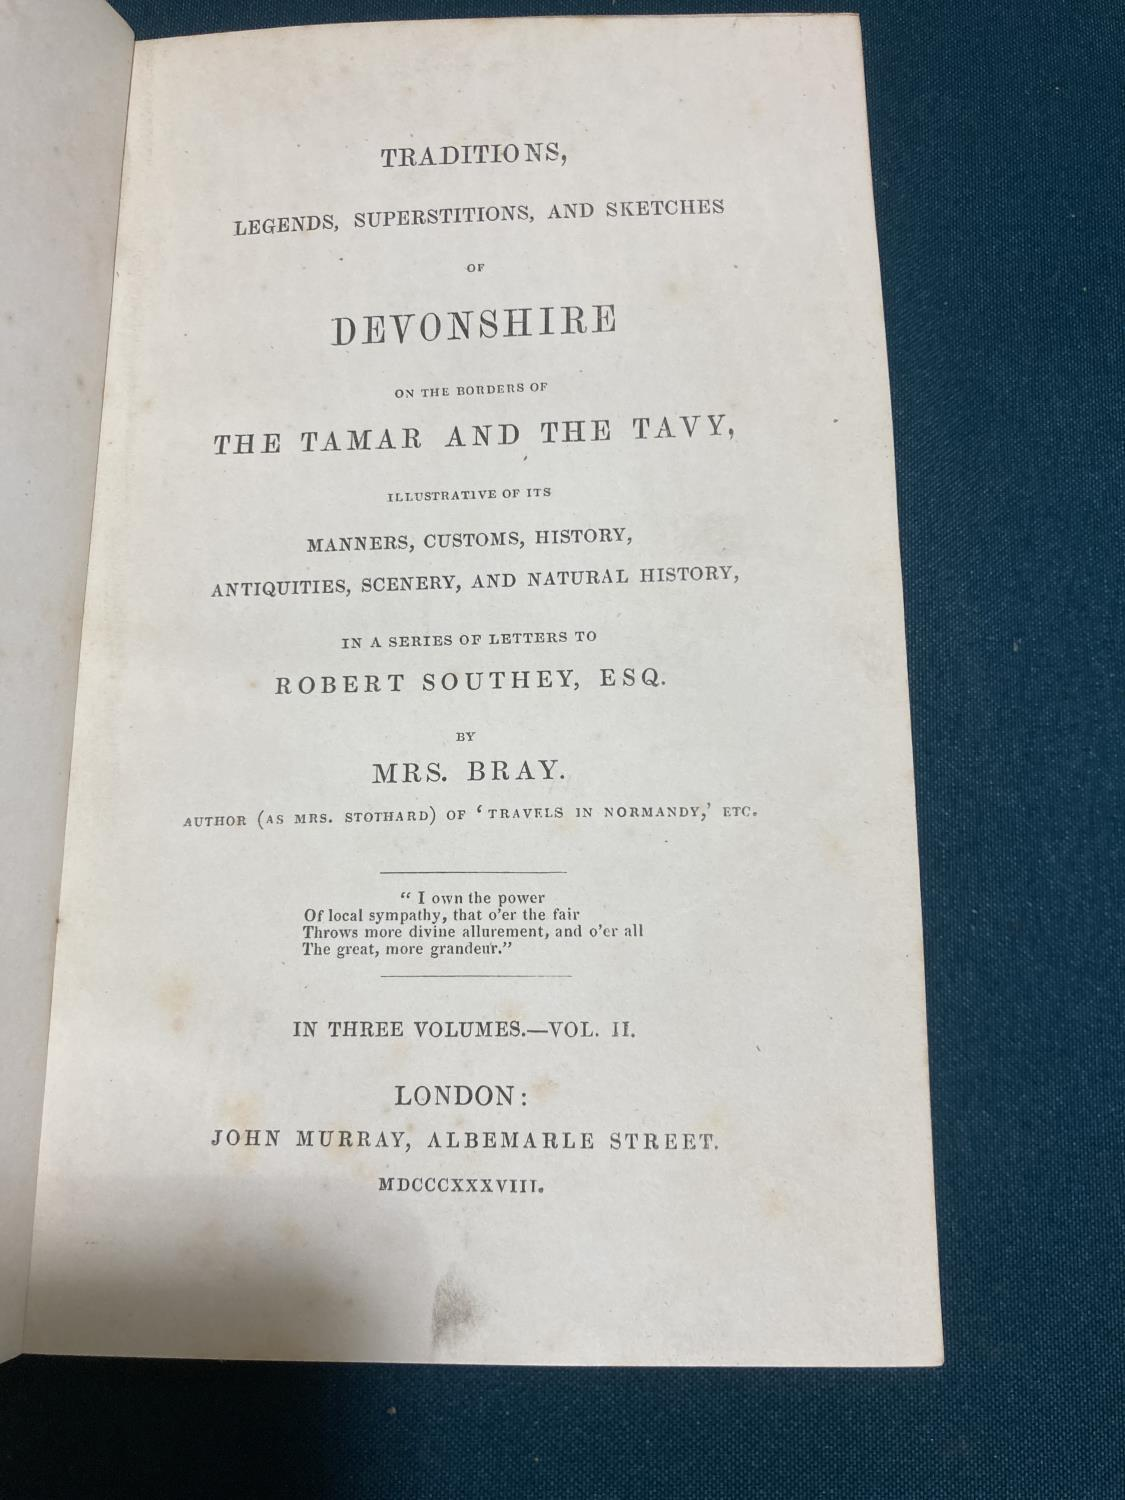 Bray, Anna Eliza Stothard. Traditions, Legends, Superstitions, and Sketches of Devonshire... in a - Image 3 of 4